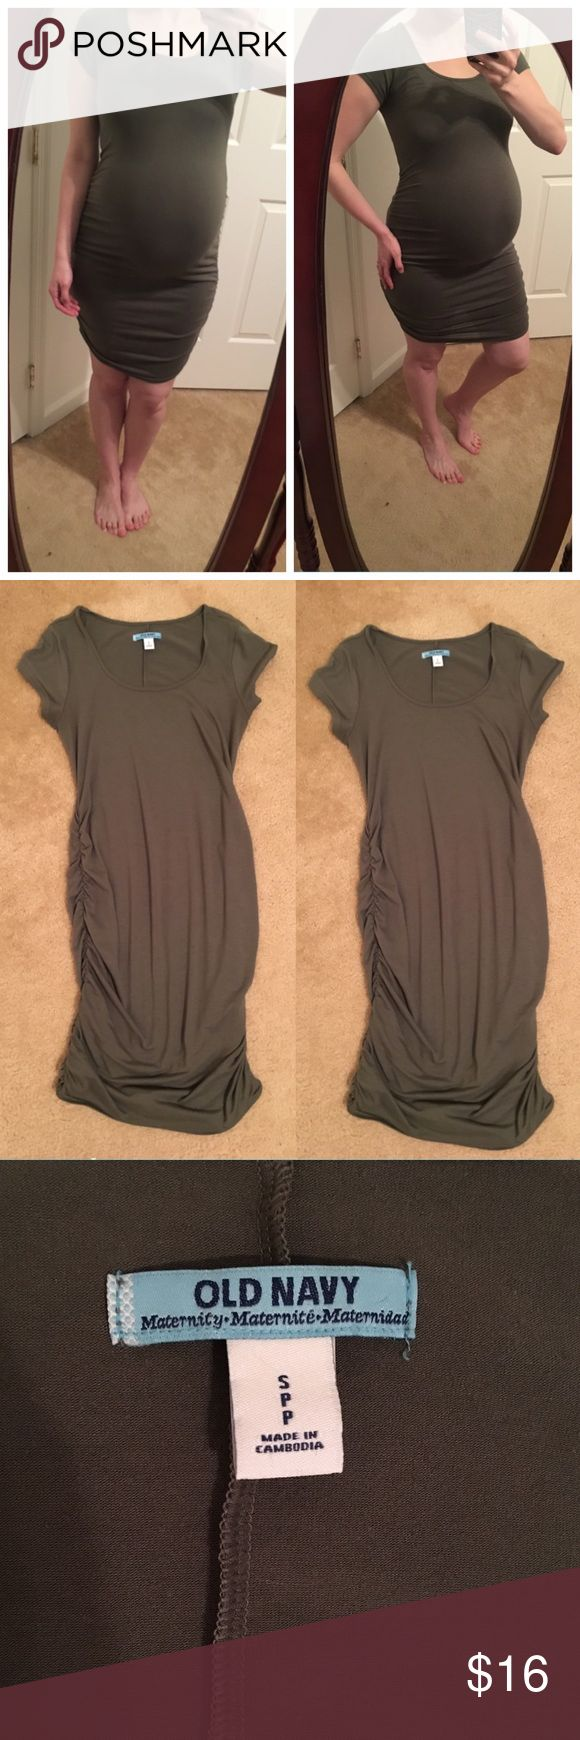 324bbcdbc3b Old Navy T Shirt Maxi Dress